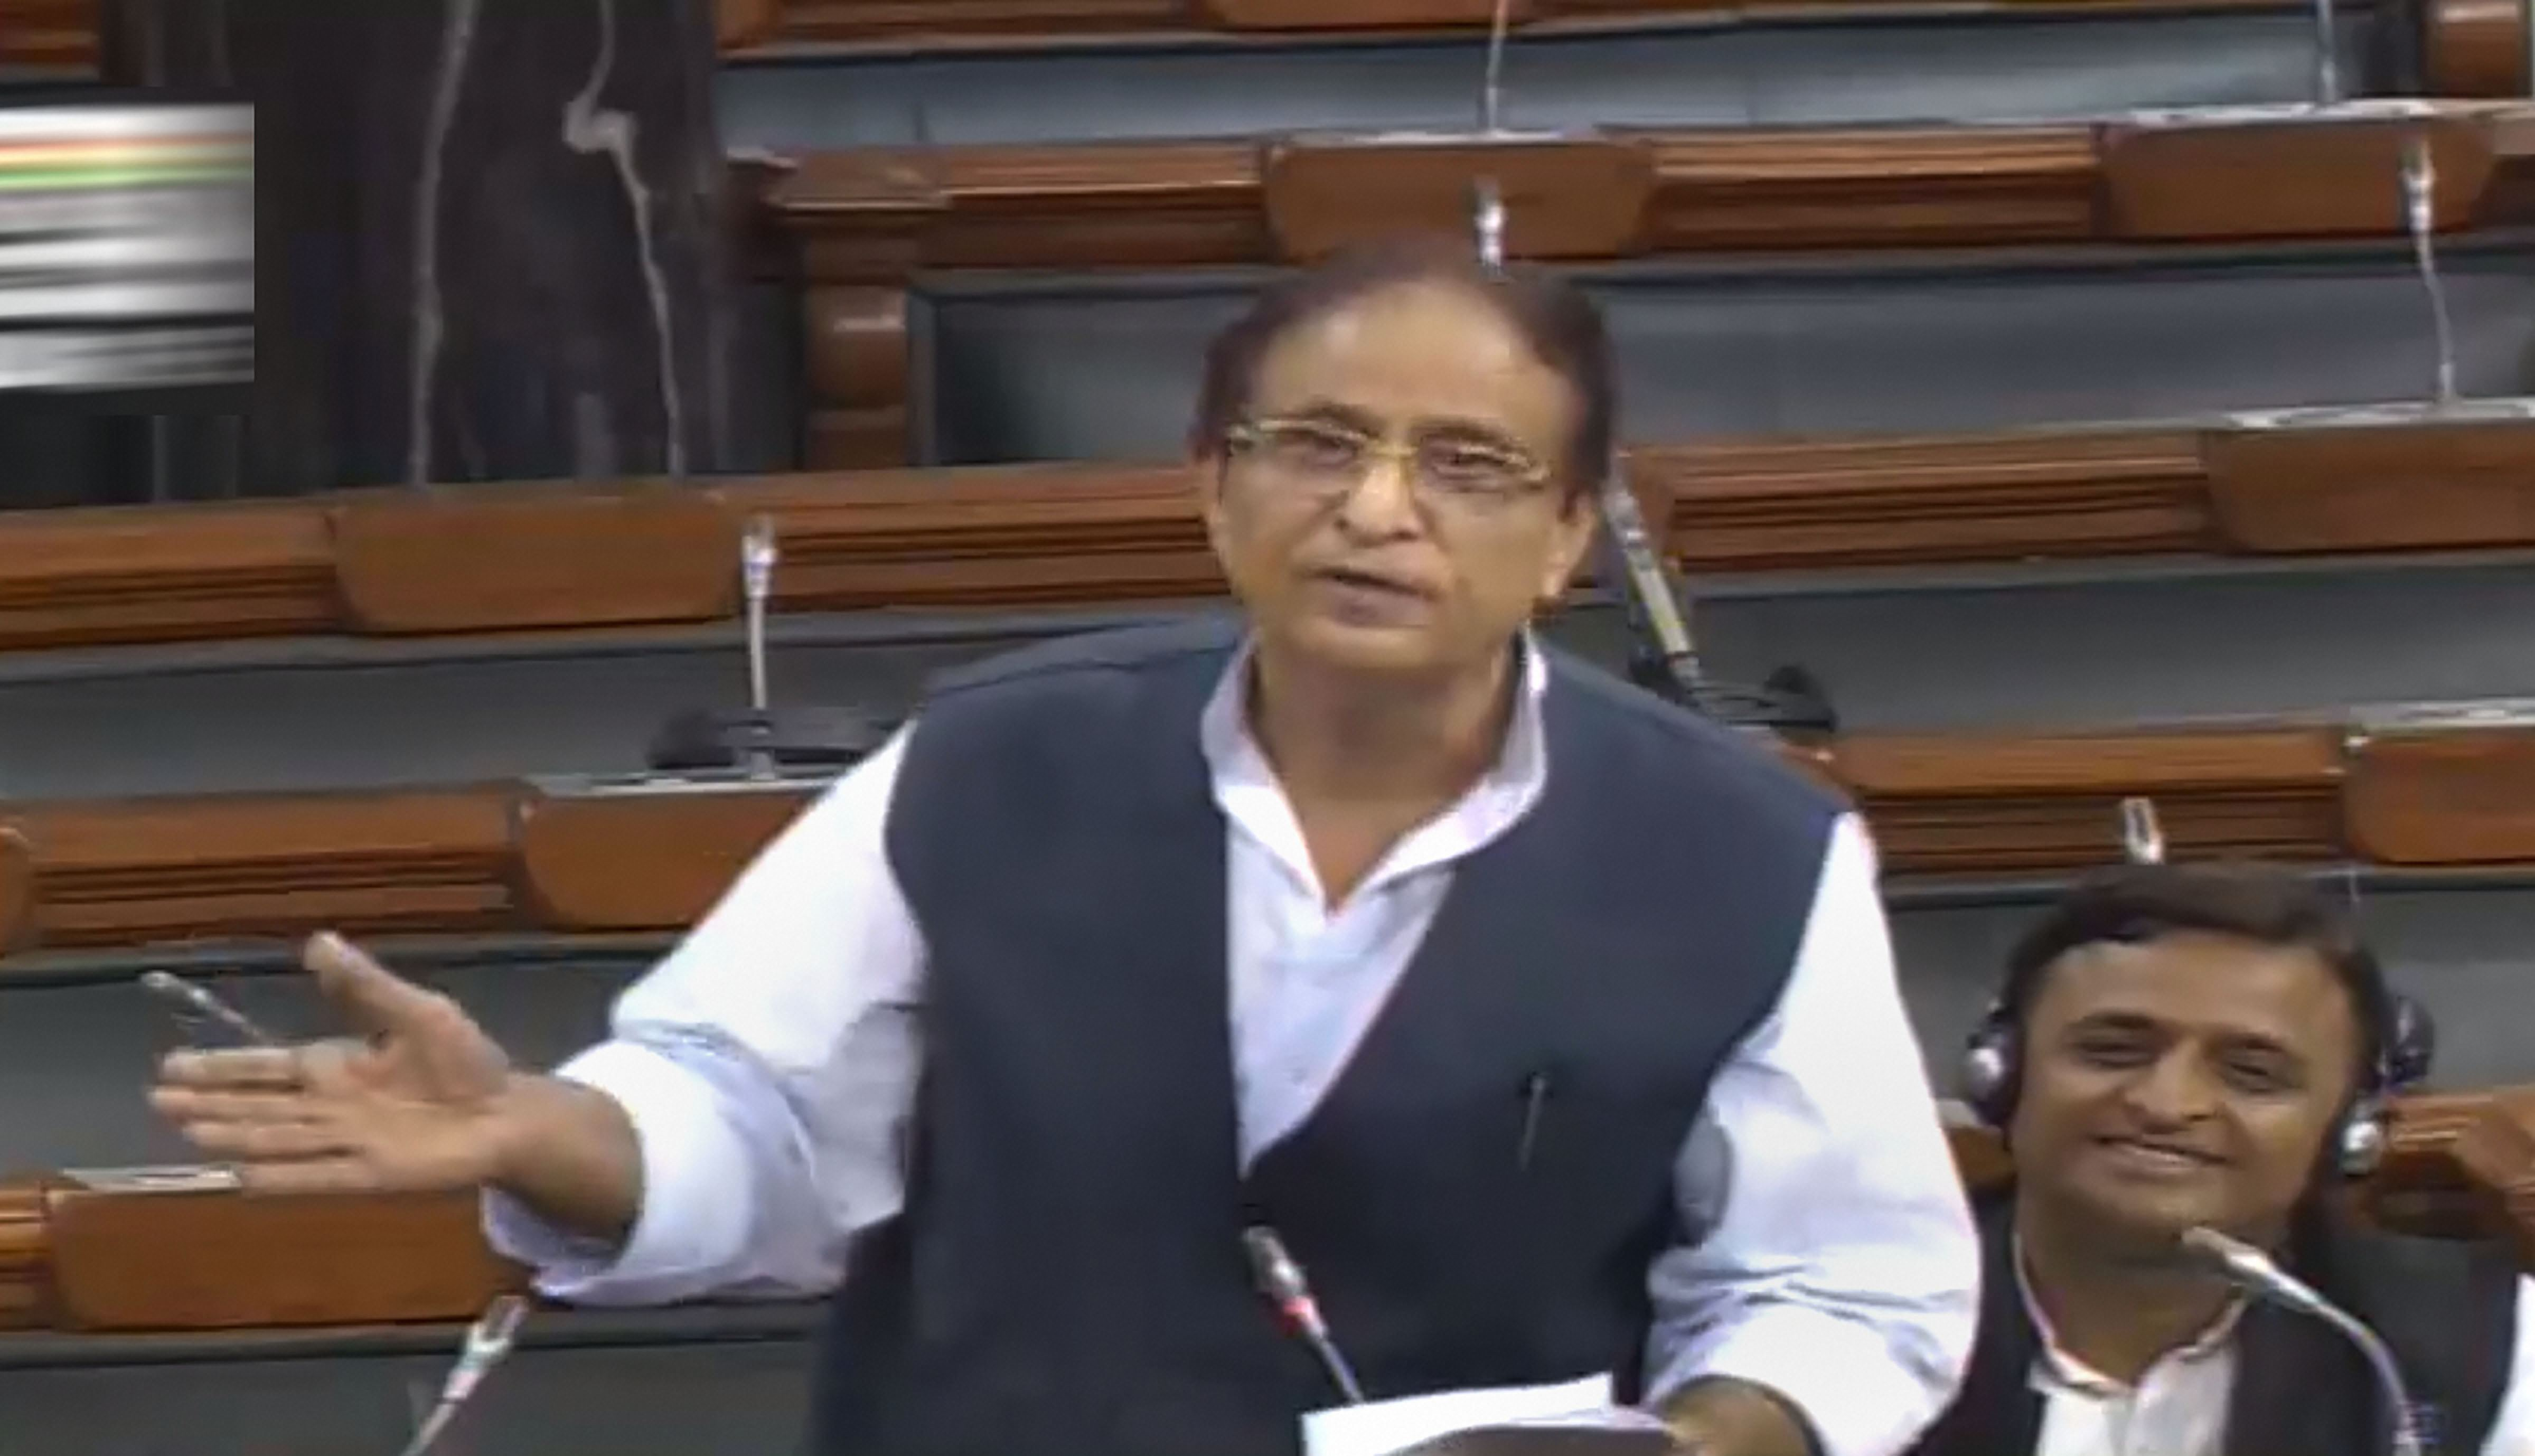 Samajwadi Party MP Azam Khan speaks in the Lok Sabha during the ongoing Budget session in New Delhi on Thursday.